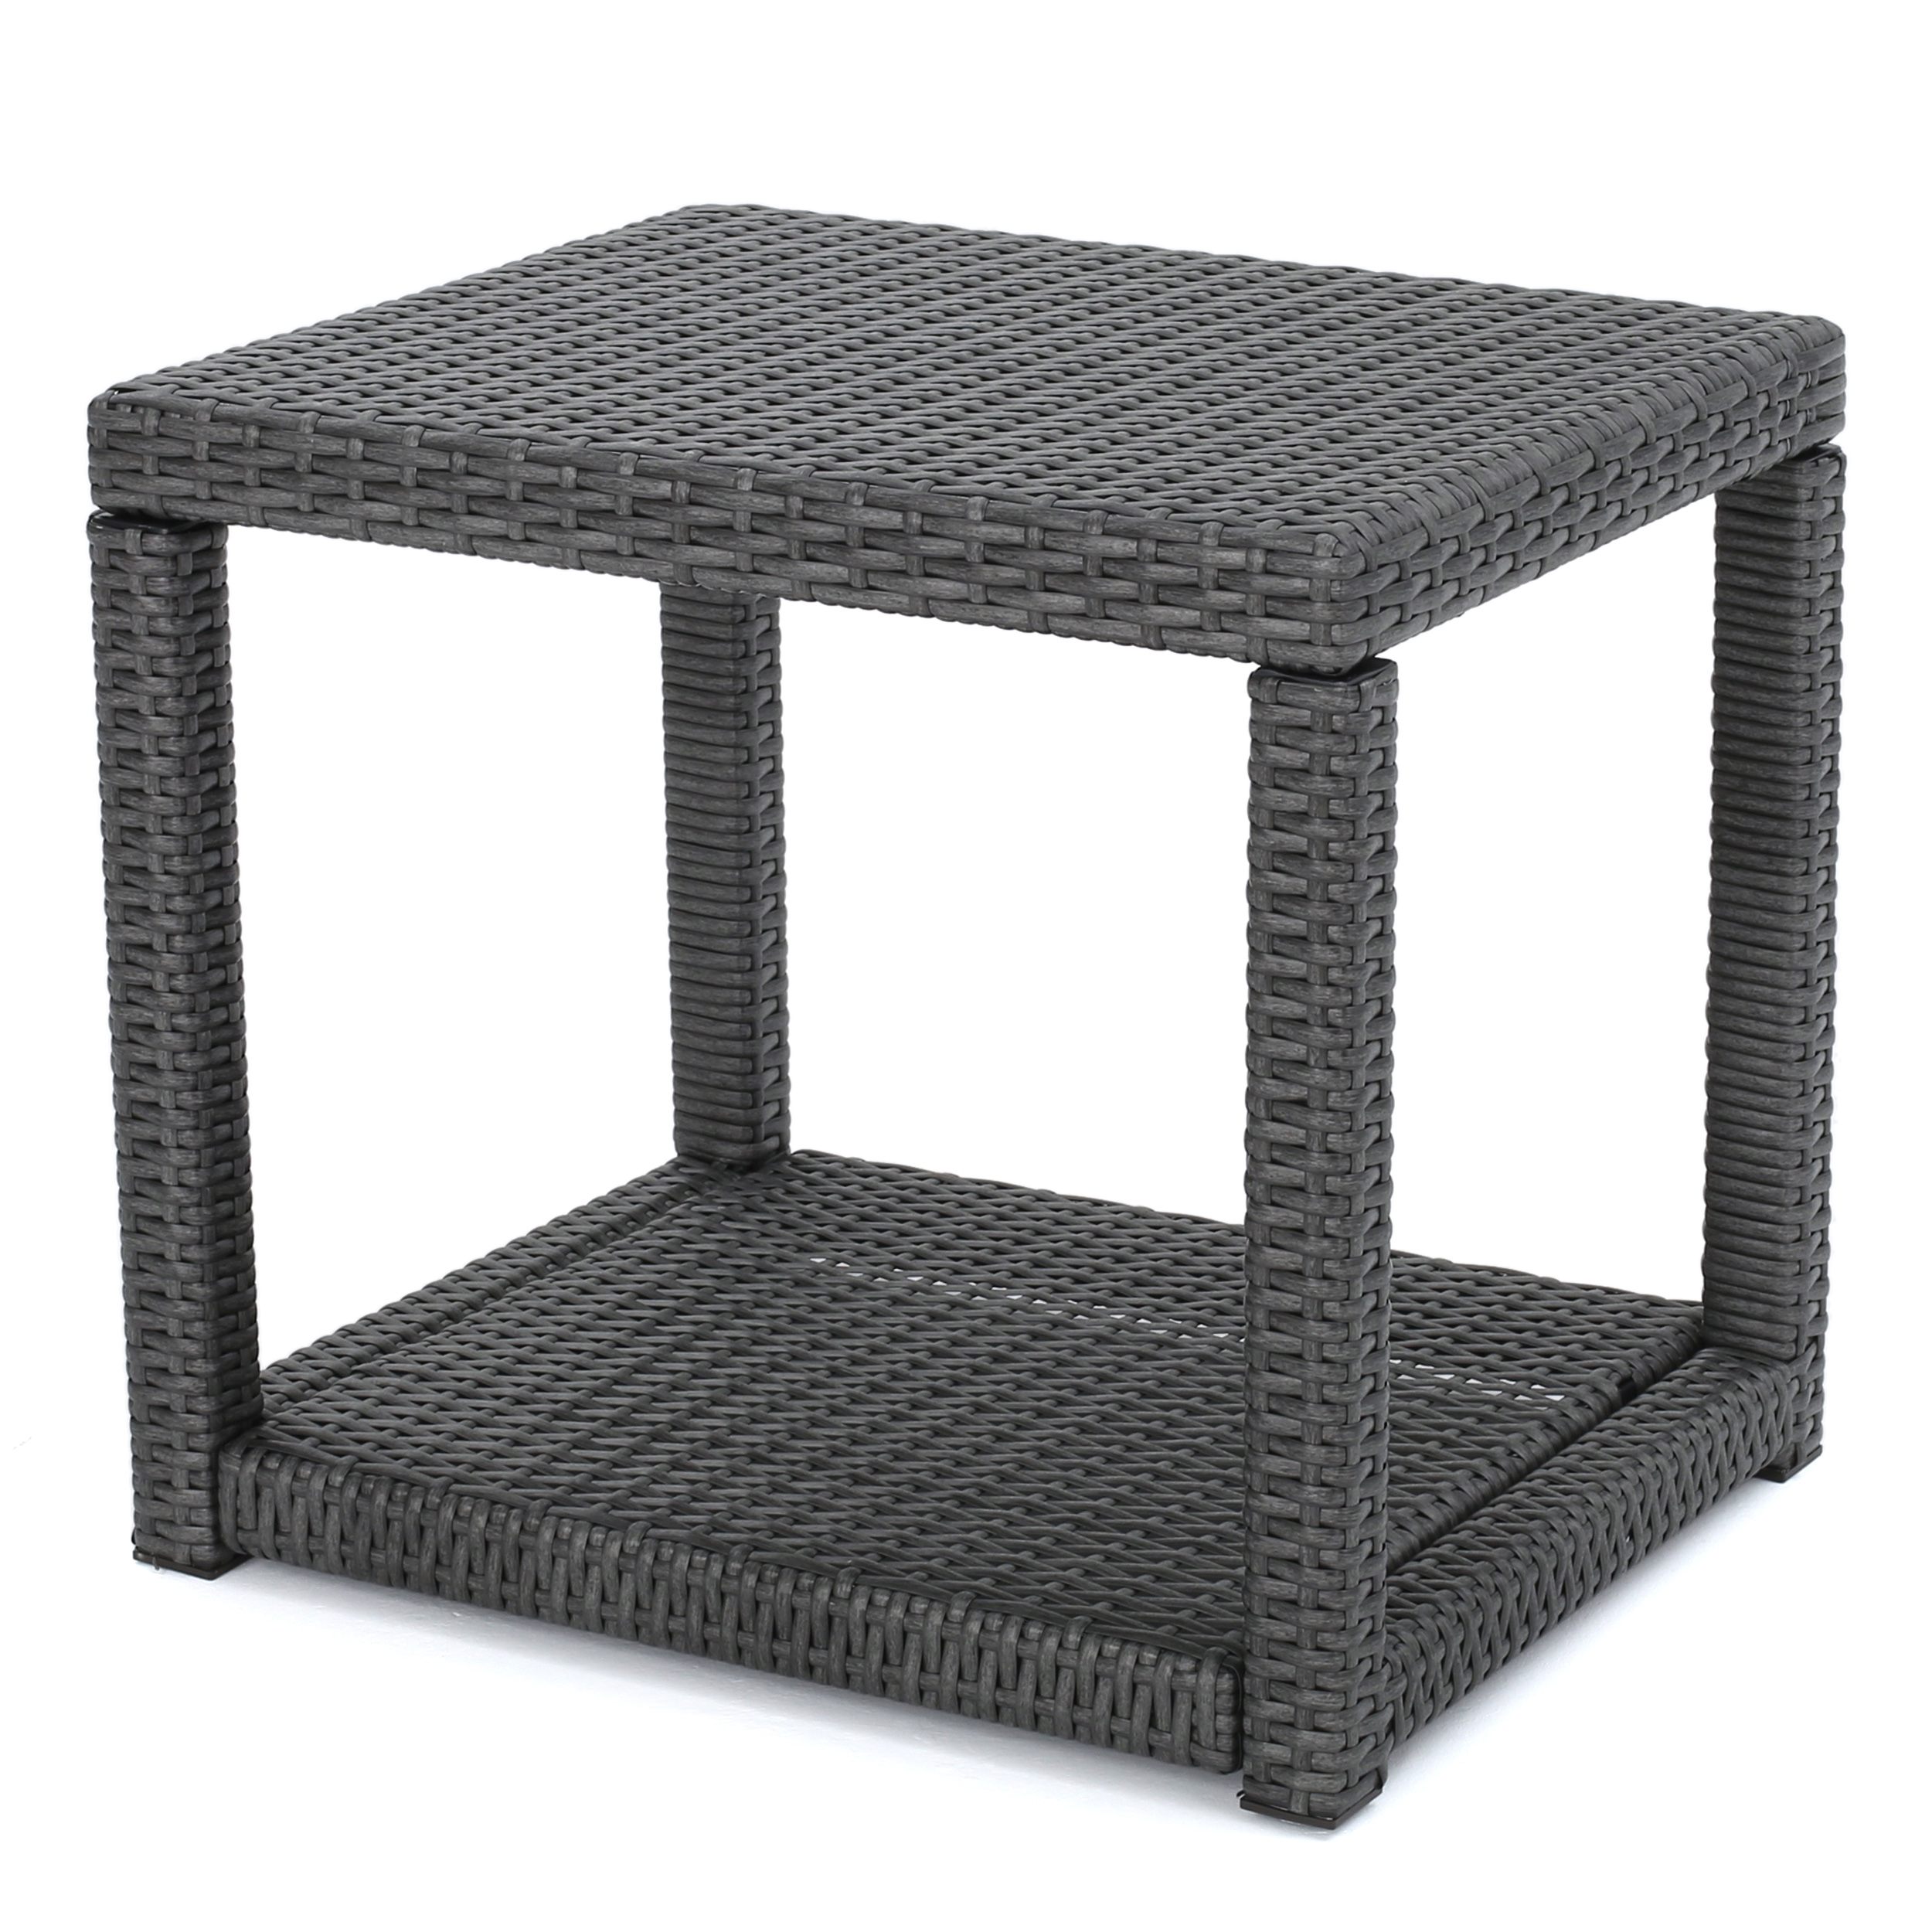 Palawan Outdoor Wicker Accent Table, Grey